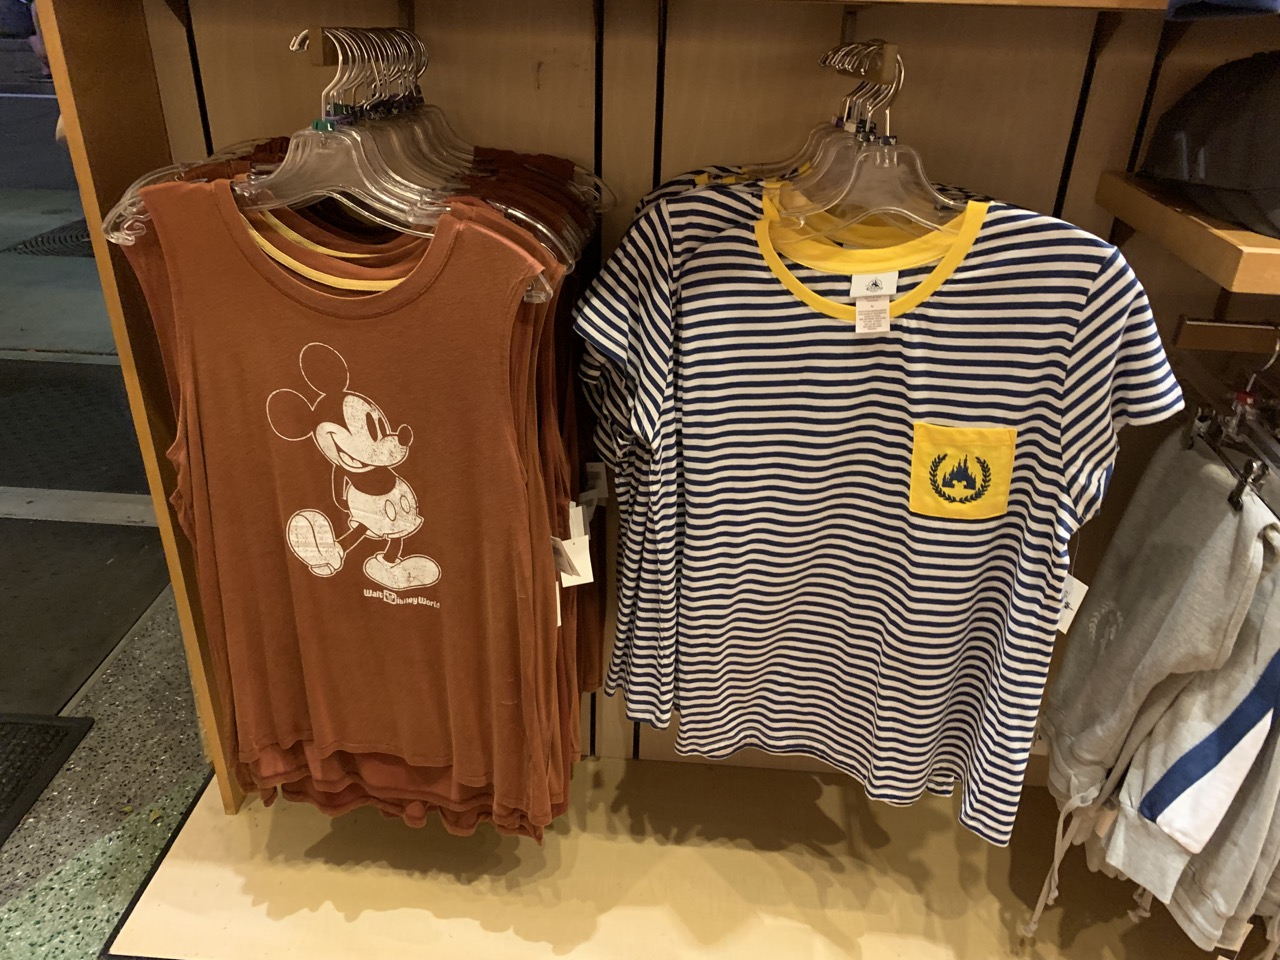 disney world trip report early summer 2019 day two merchandise 13.jpeg